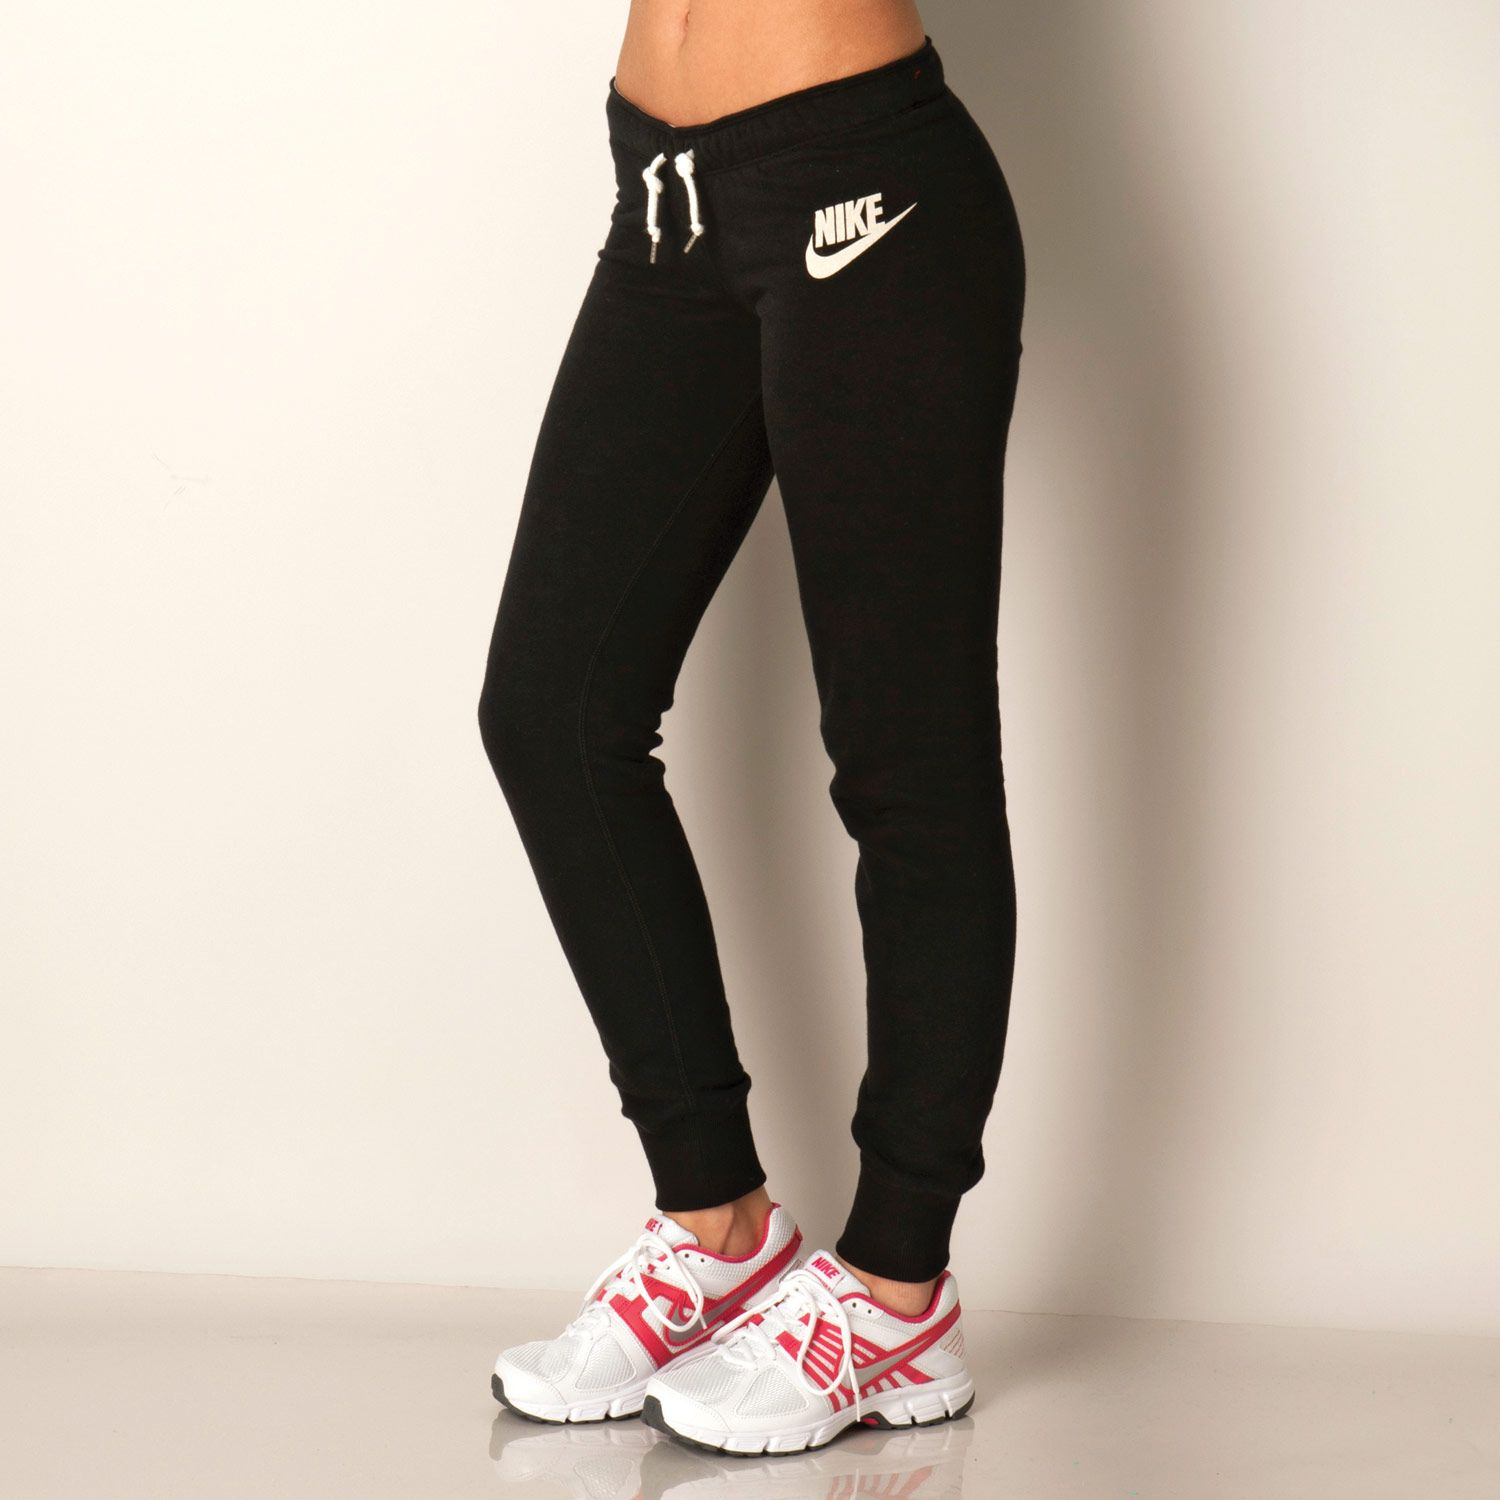 Women's Nike Womens Rally Tight Pants in Black - Designer Clothes At  Massive Discounts